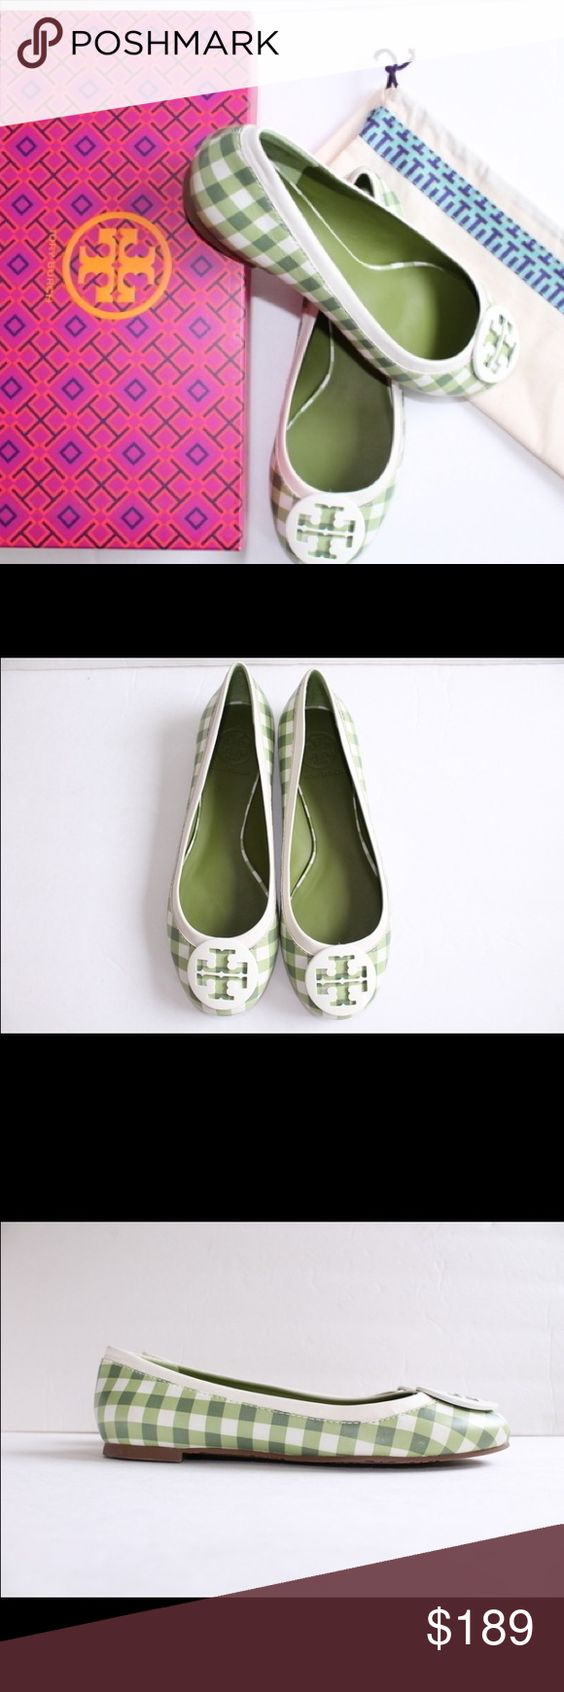 Tory Burch Green Plaid Flats